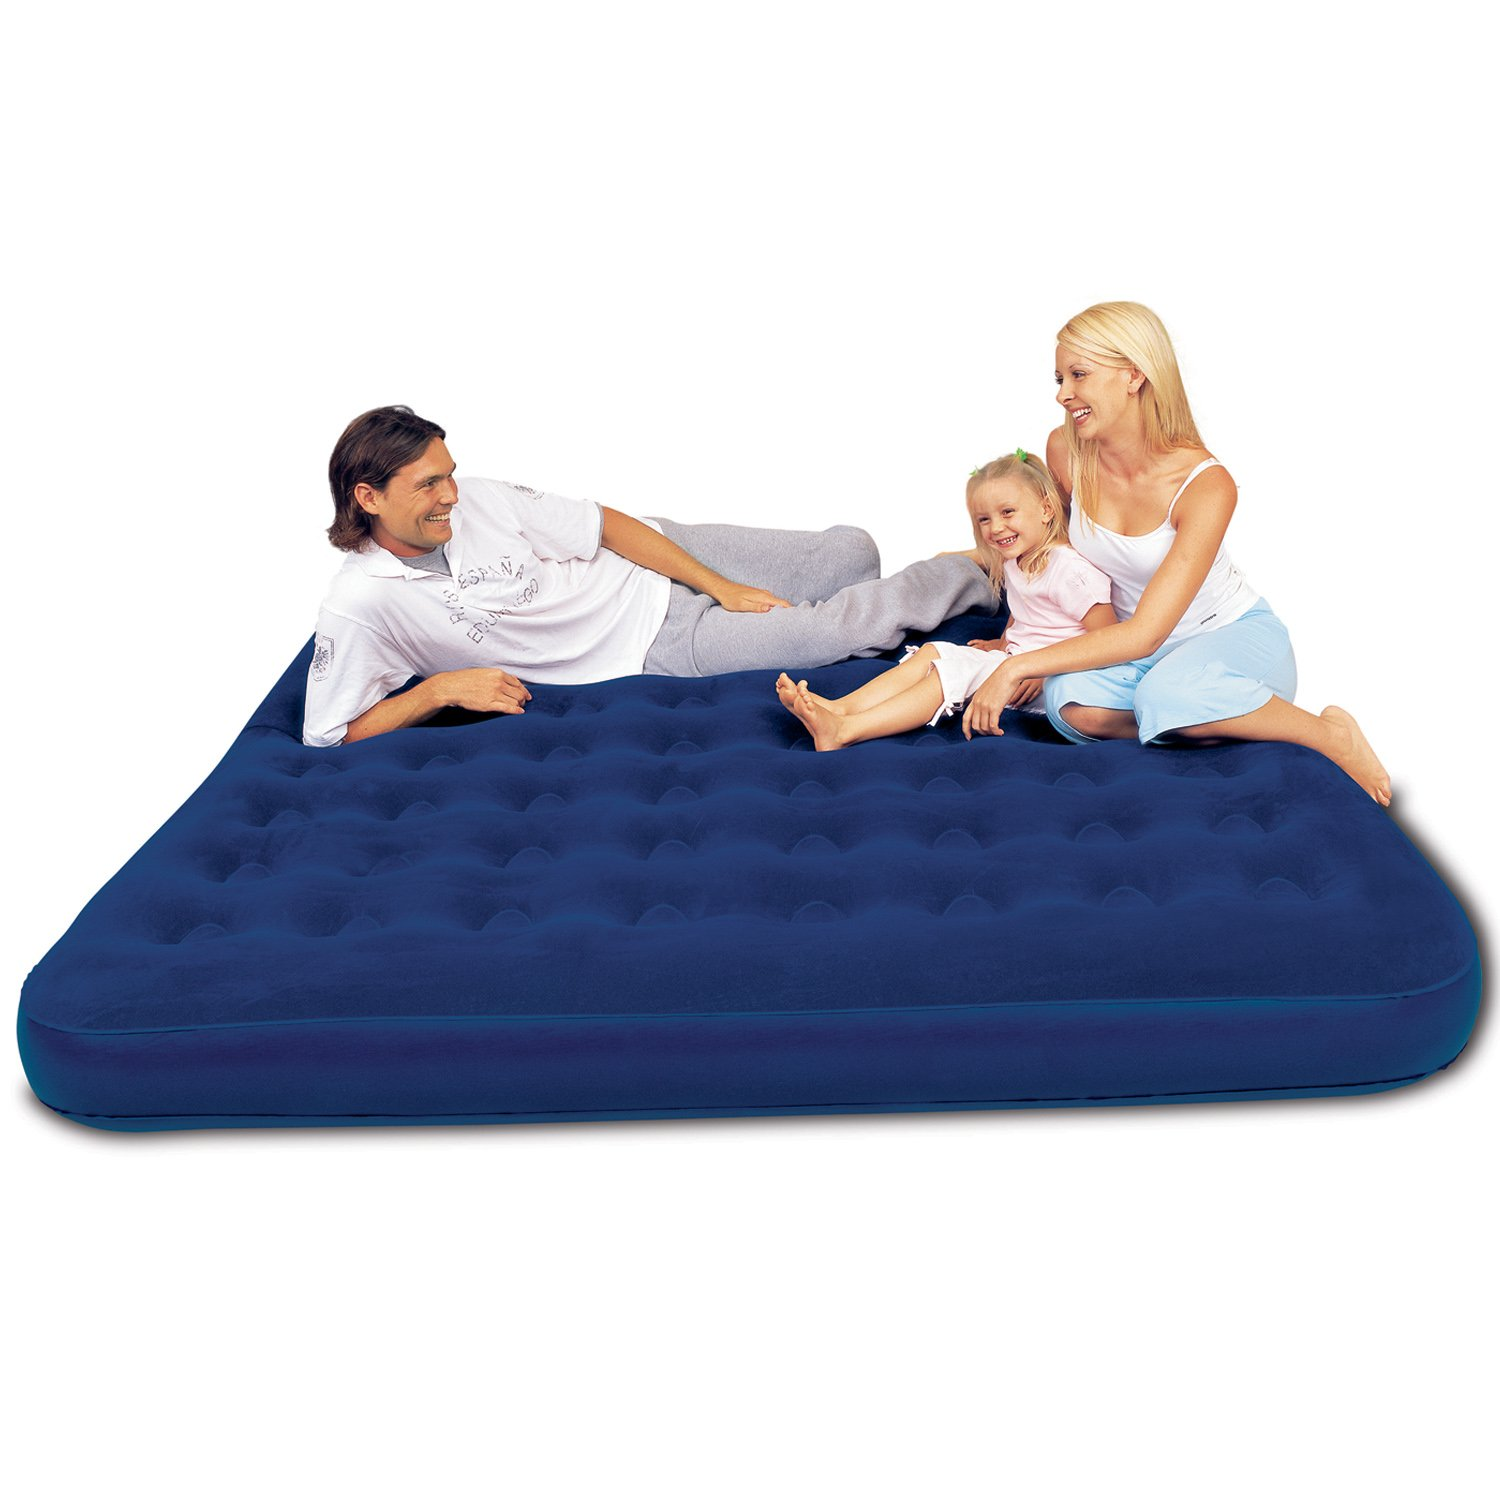 king size air mattress. Comfort Quest Flocked Airbed - King Size, Blue: Amazon.co.uk: Sports \u0026 Outdoors Size Air Mattress